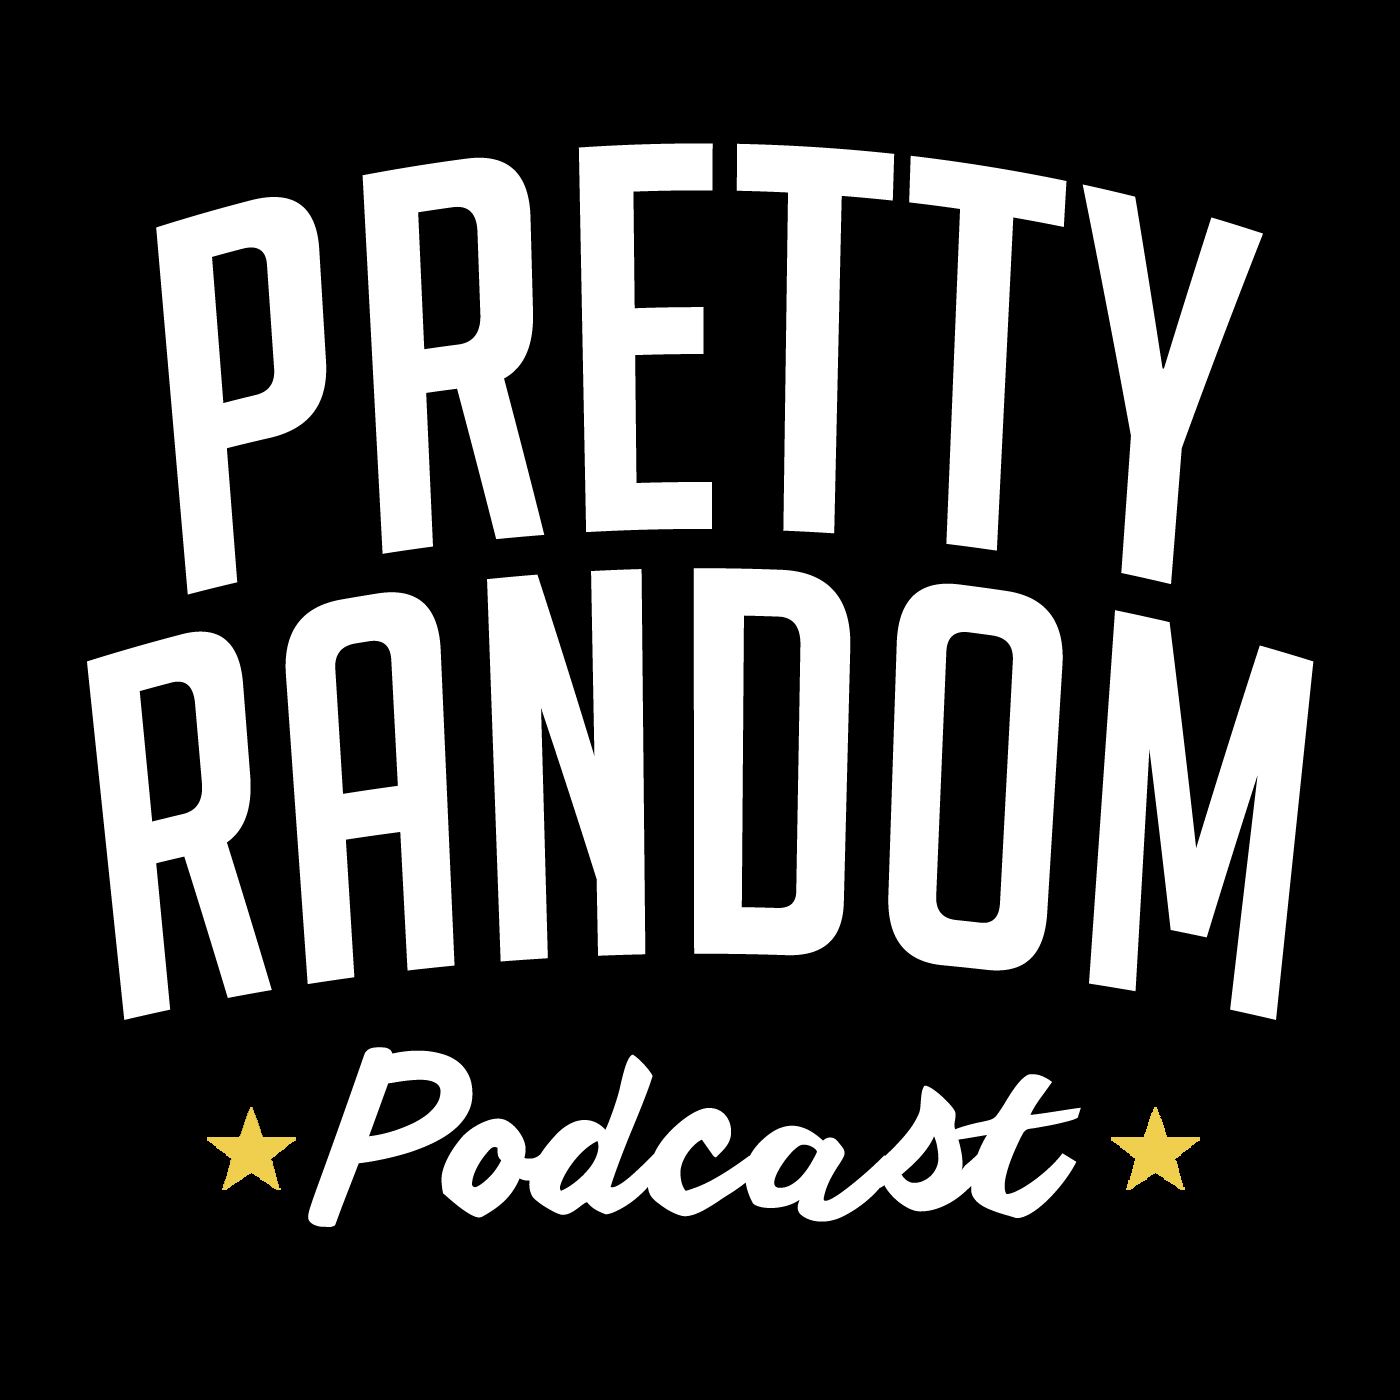 Pretty Random Podcast